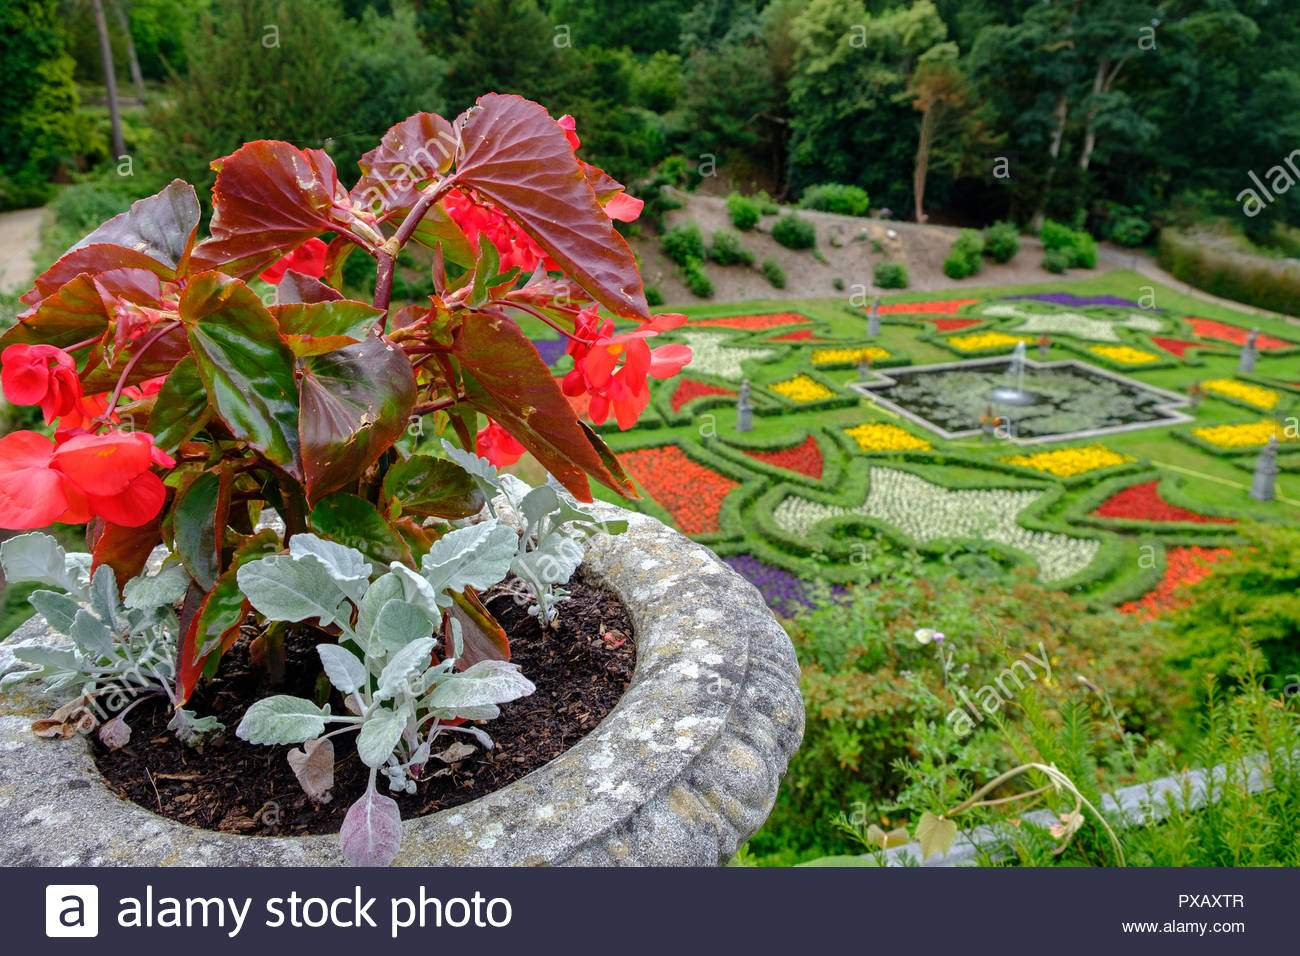 blumentopf und schone garten in lyme hall herrenhaus in peak district cheshire grossbritannien pxaxtr